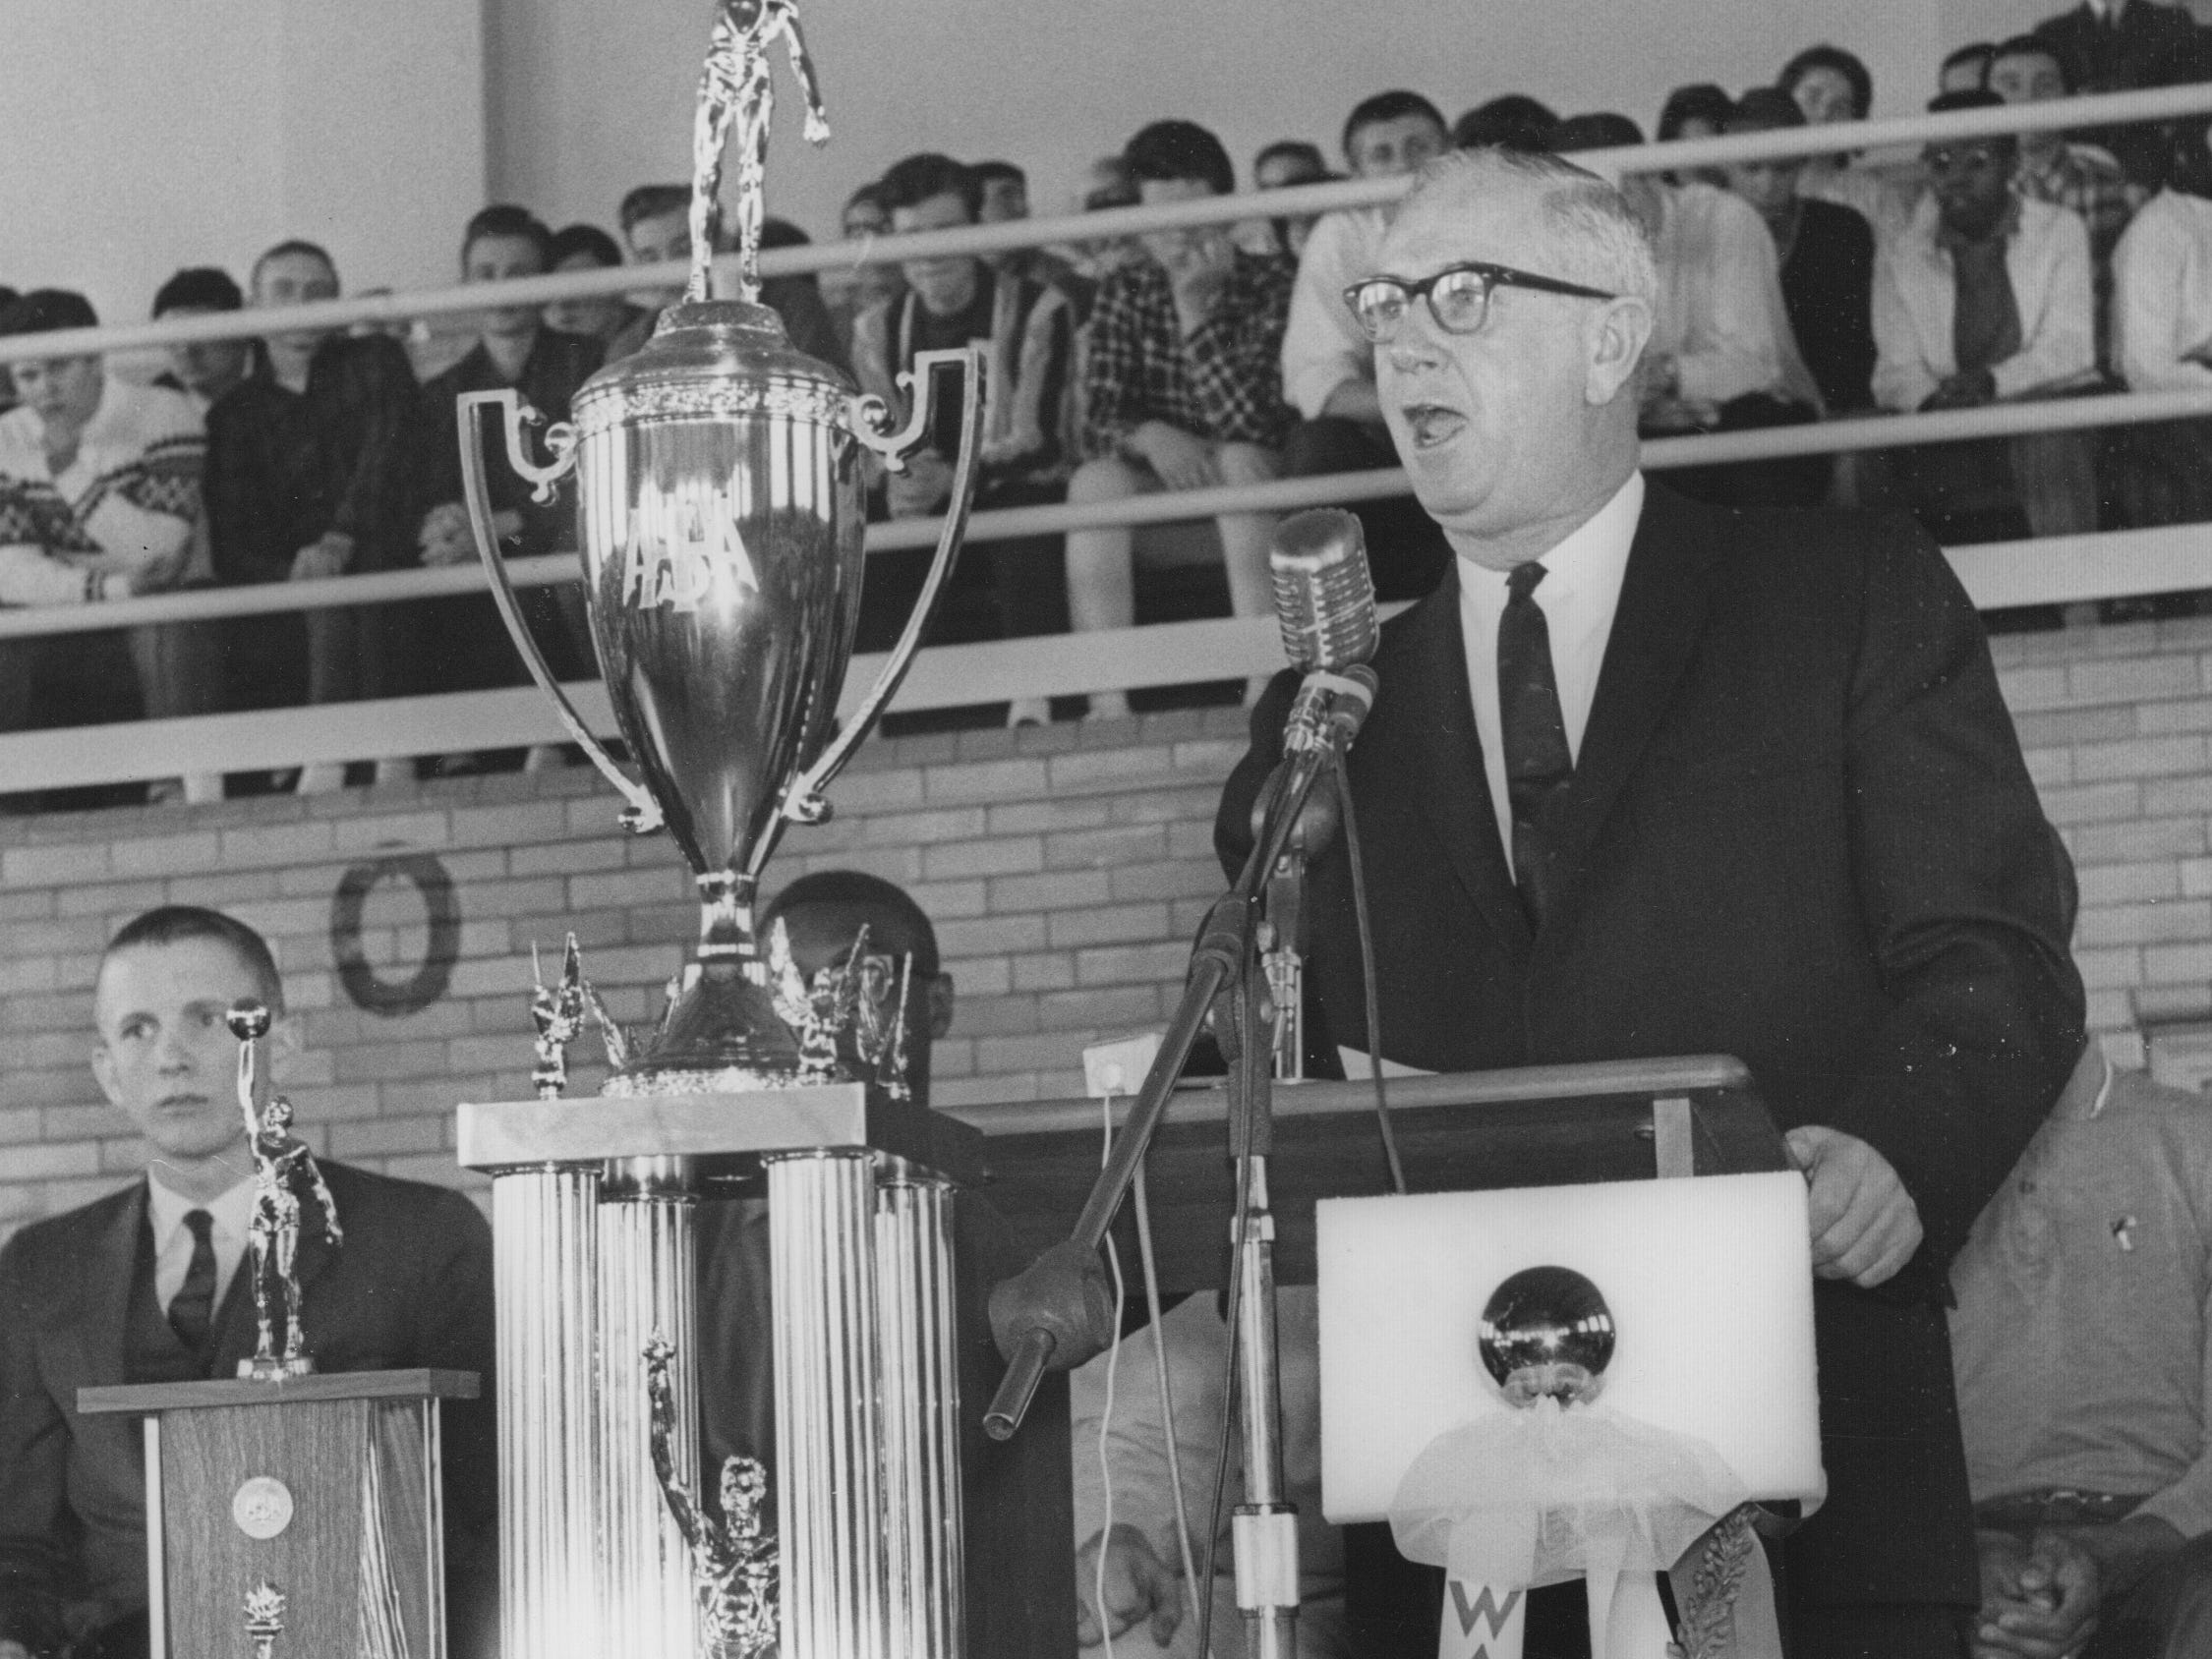 Indianapolis Mayor John Barton addressed students and faculty at Washington High School as it celebrated their 1965 state basketball championship. Barton presented the key to the city to coach Jerry Oliver.